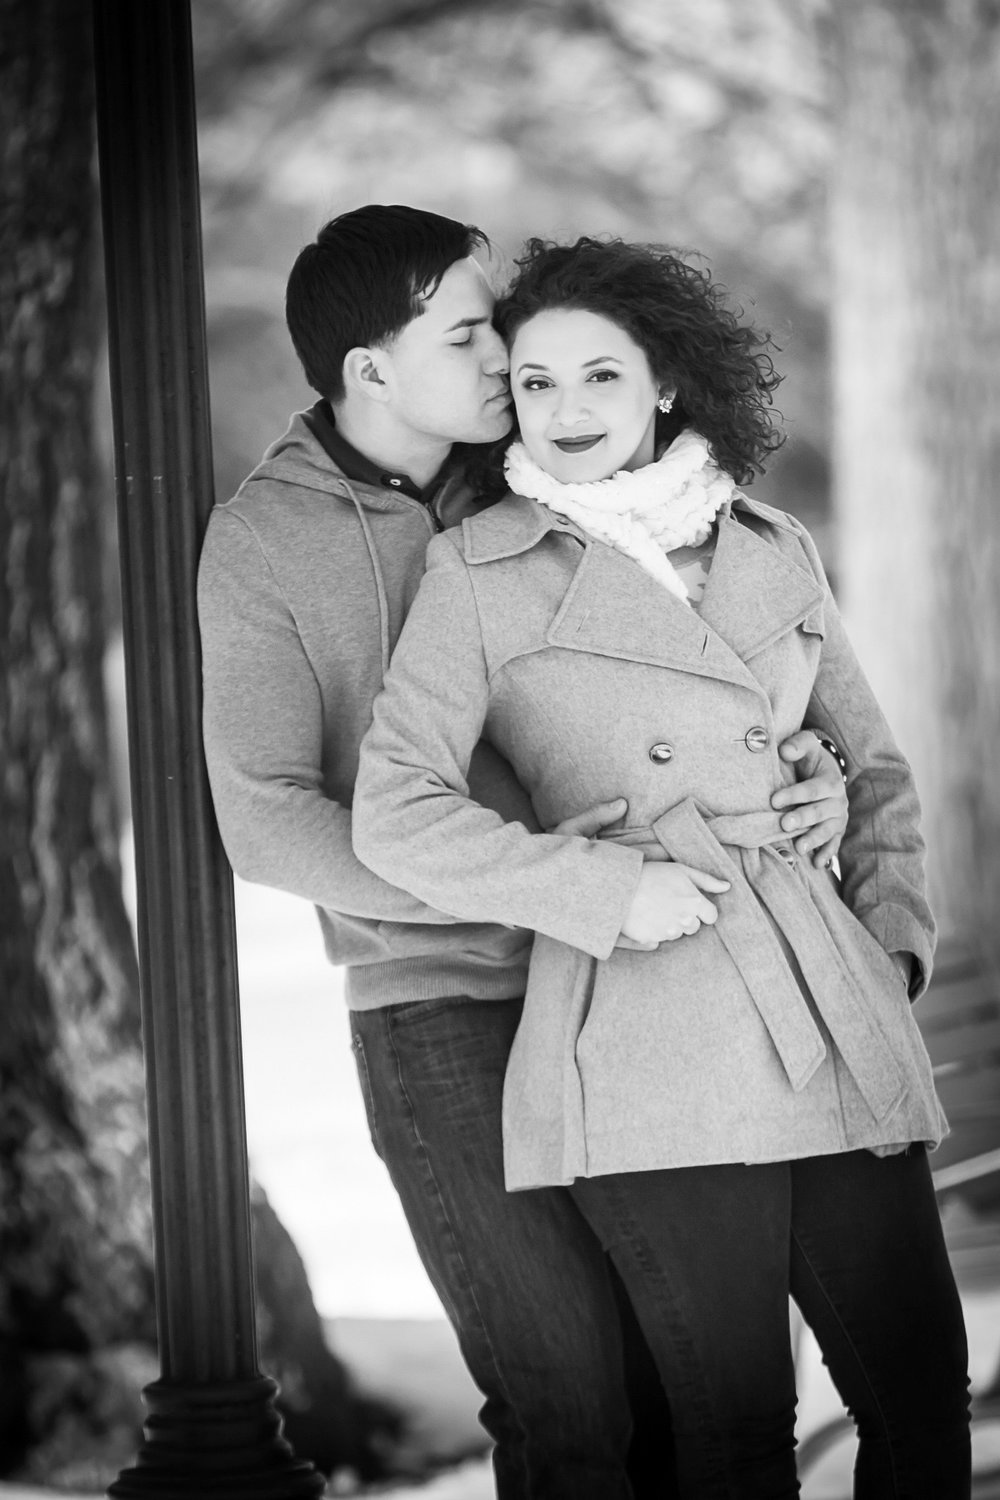 bergen_county_new_jersey_engagement_photography_0021.jpg